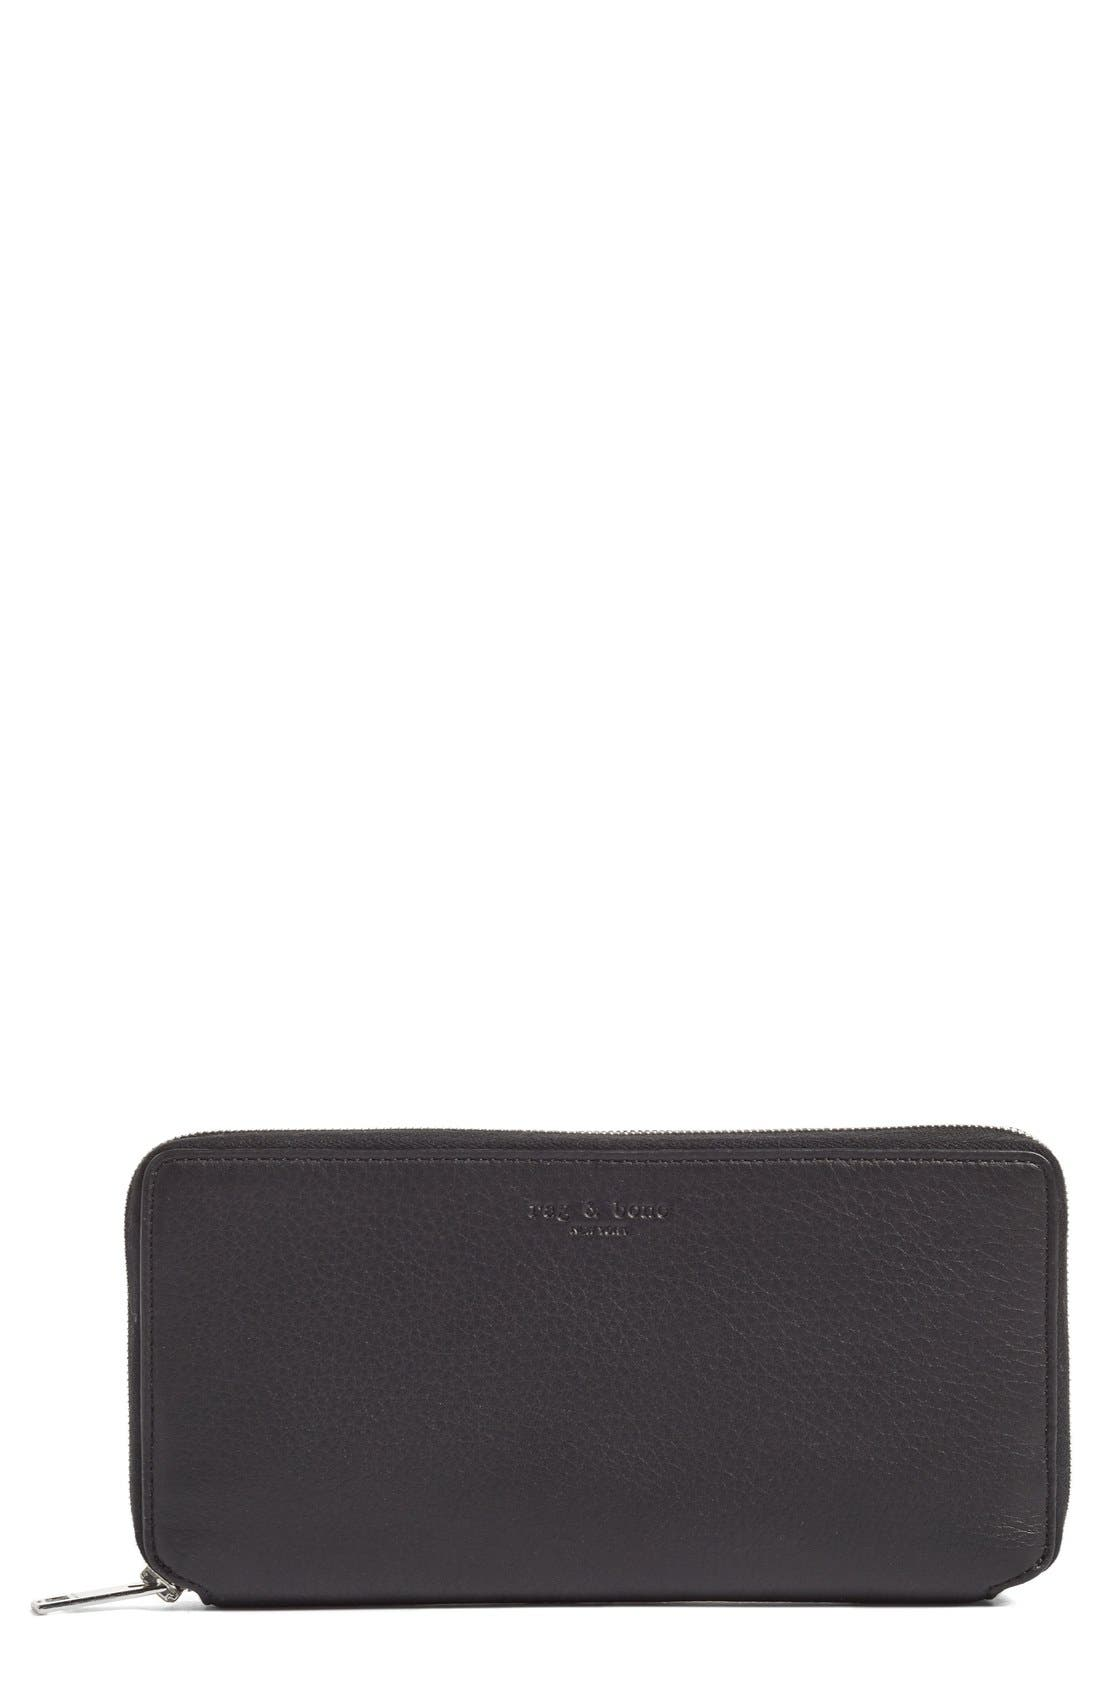 Leather Zip Around Wallet,                         Main,                         color, 001